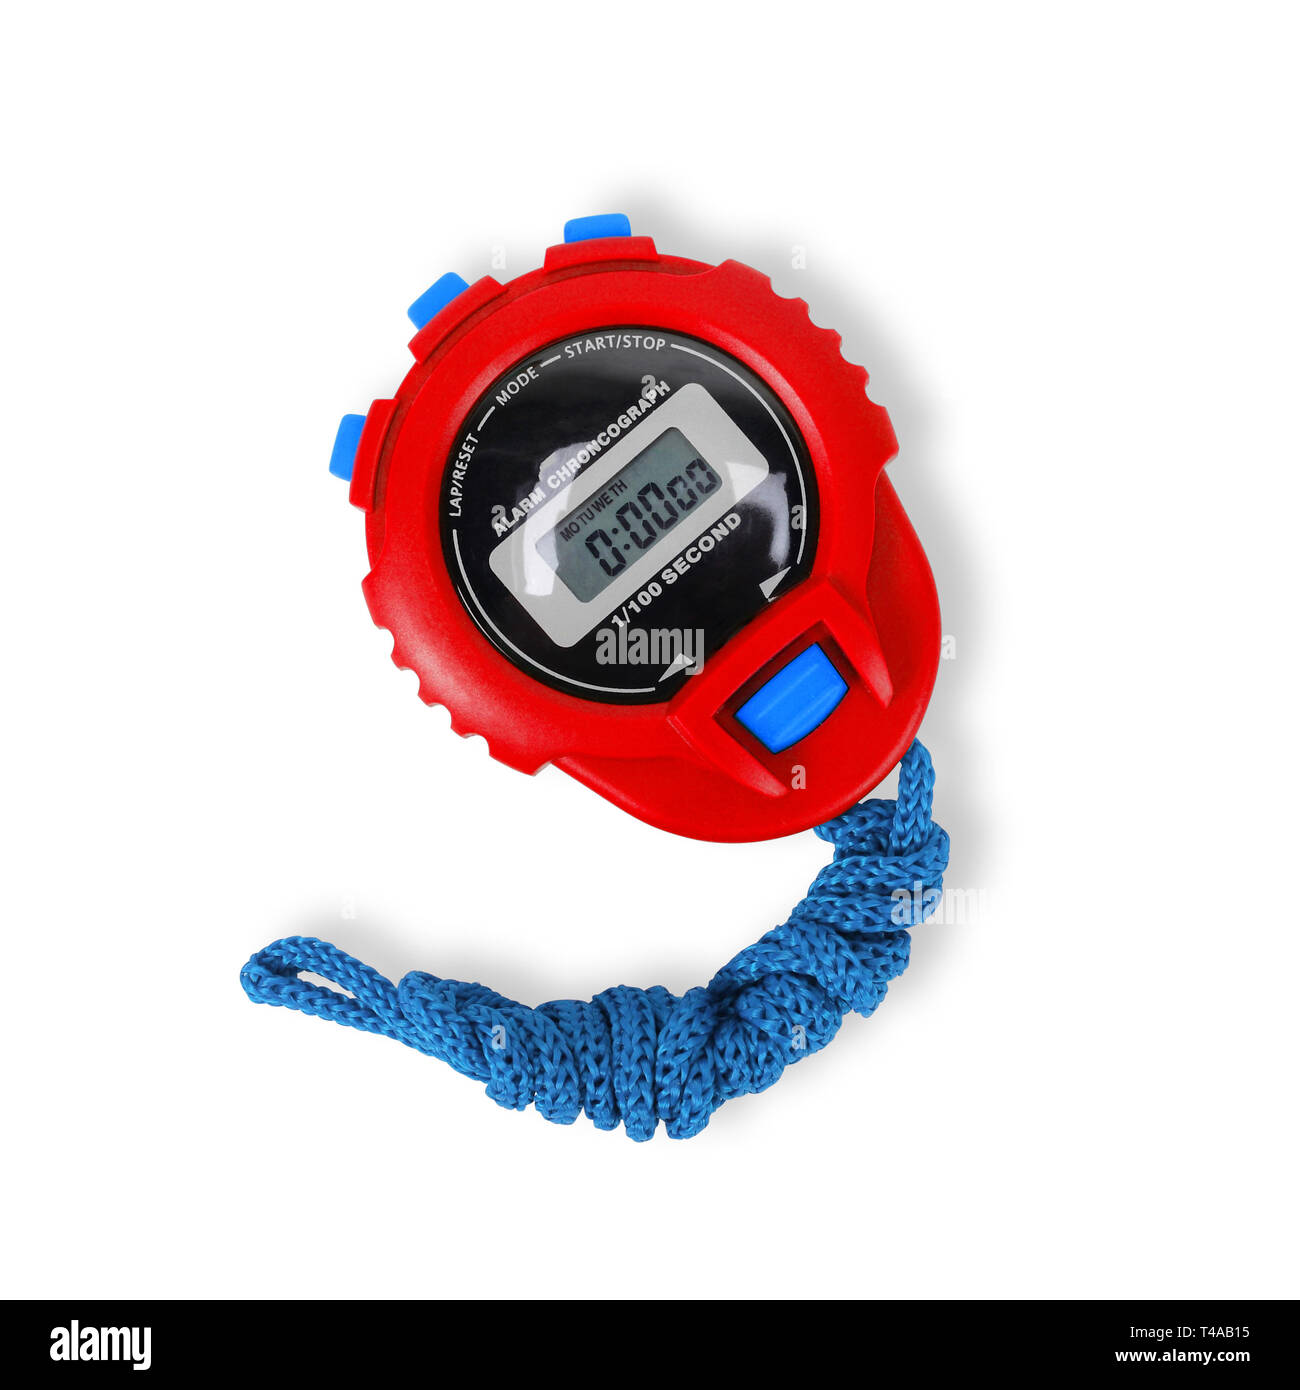 Sports equipment - Red blue Digital electronic Stopwatch on a white background. Isolated - Stock Image